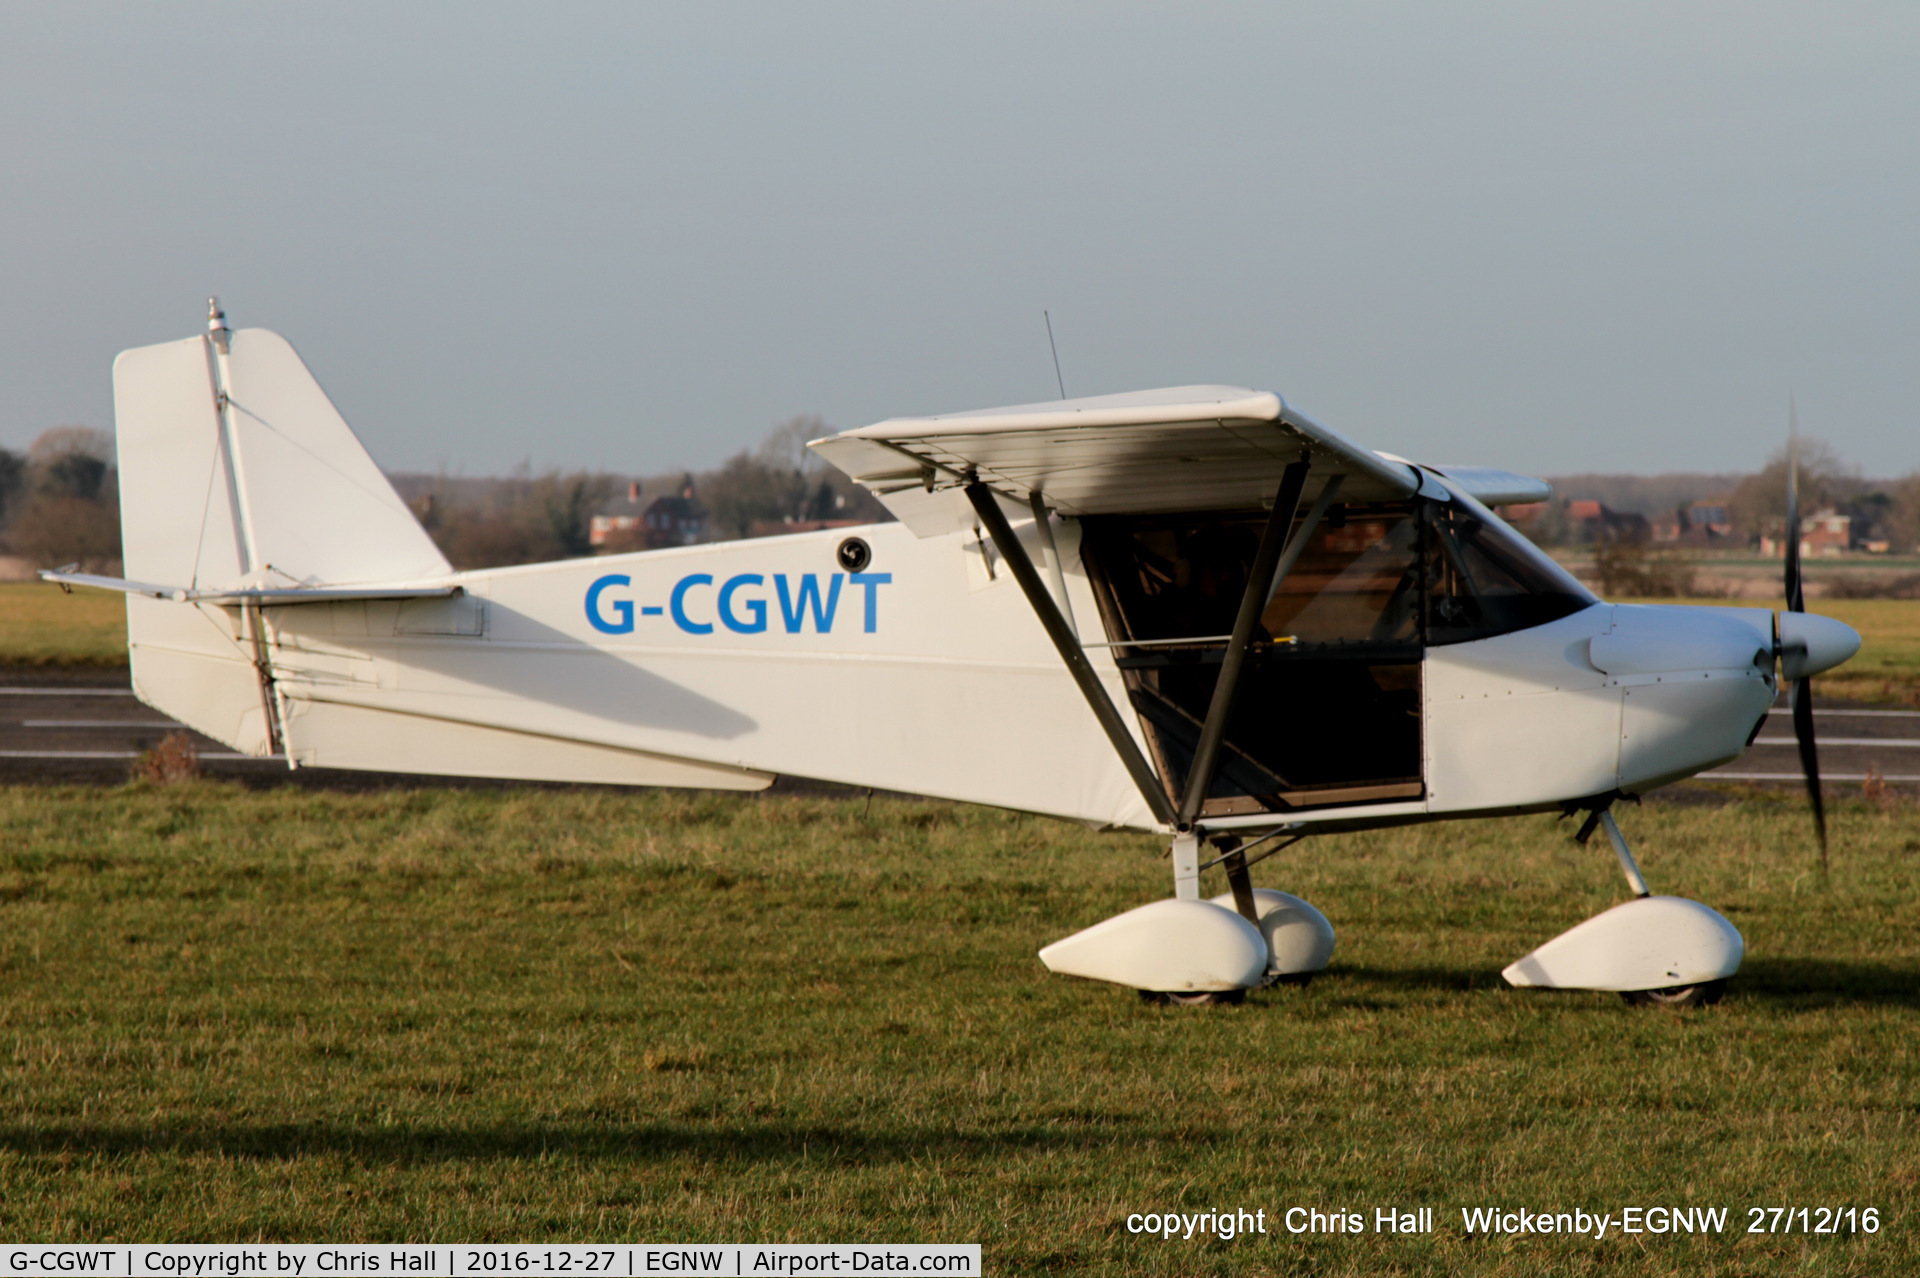 G-CGWT, 2008 Best Off SkyRanger Swift 912(1) C/N BMAA/HB/567, at the Wickenby